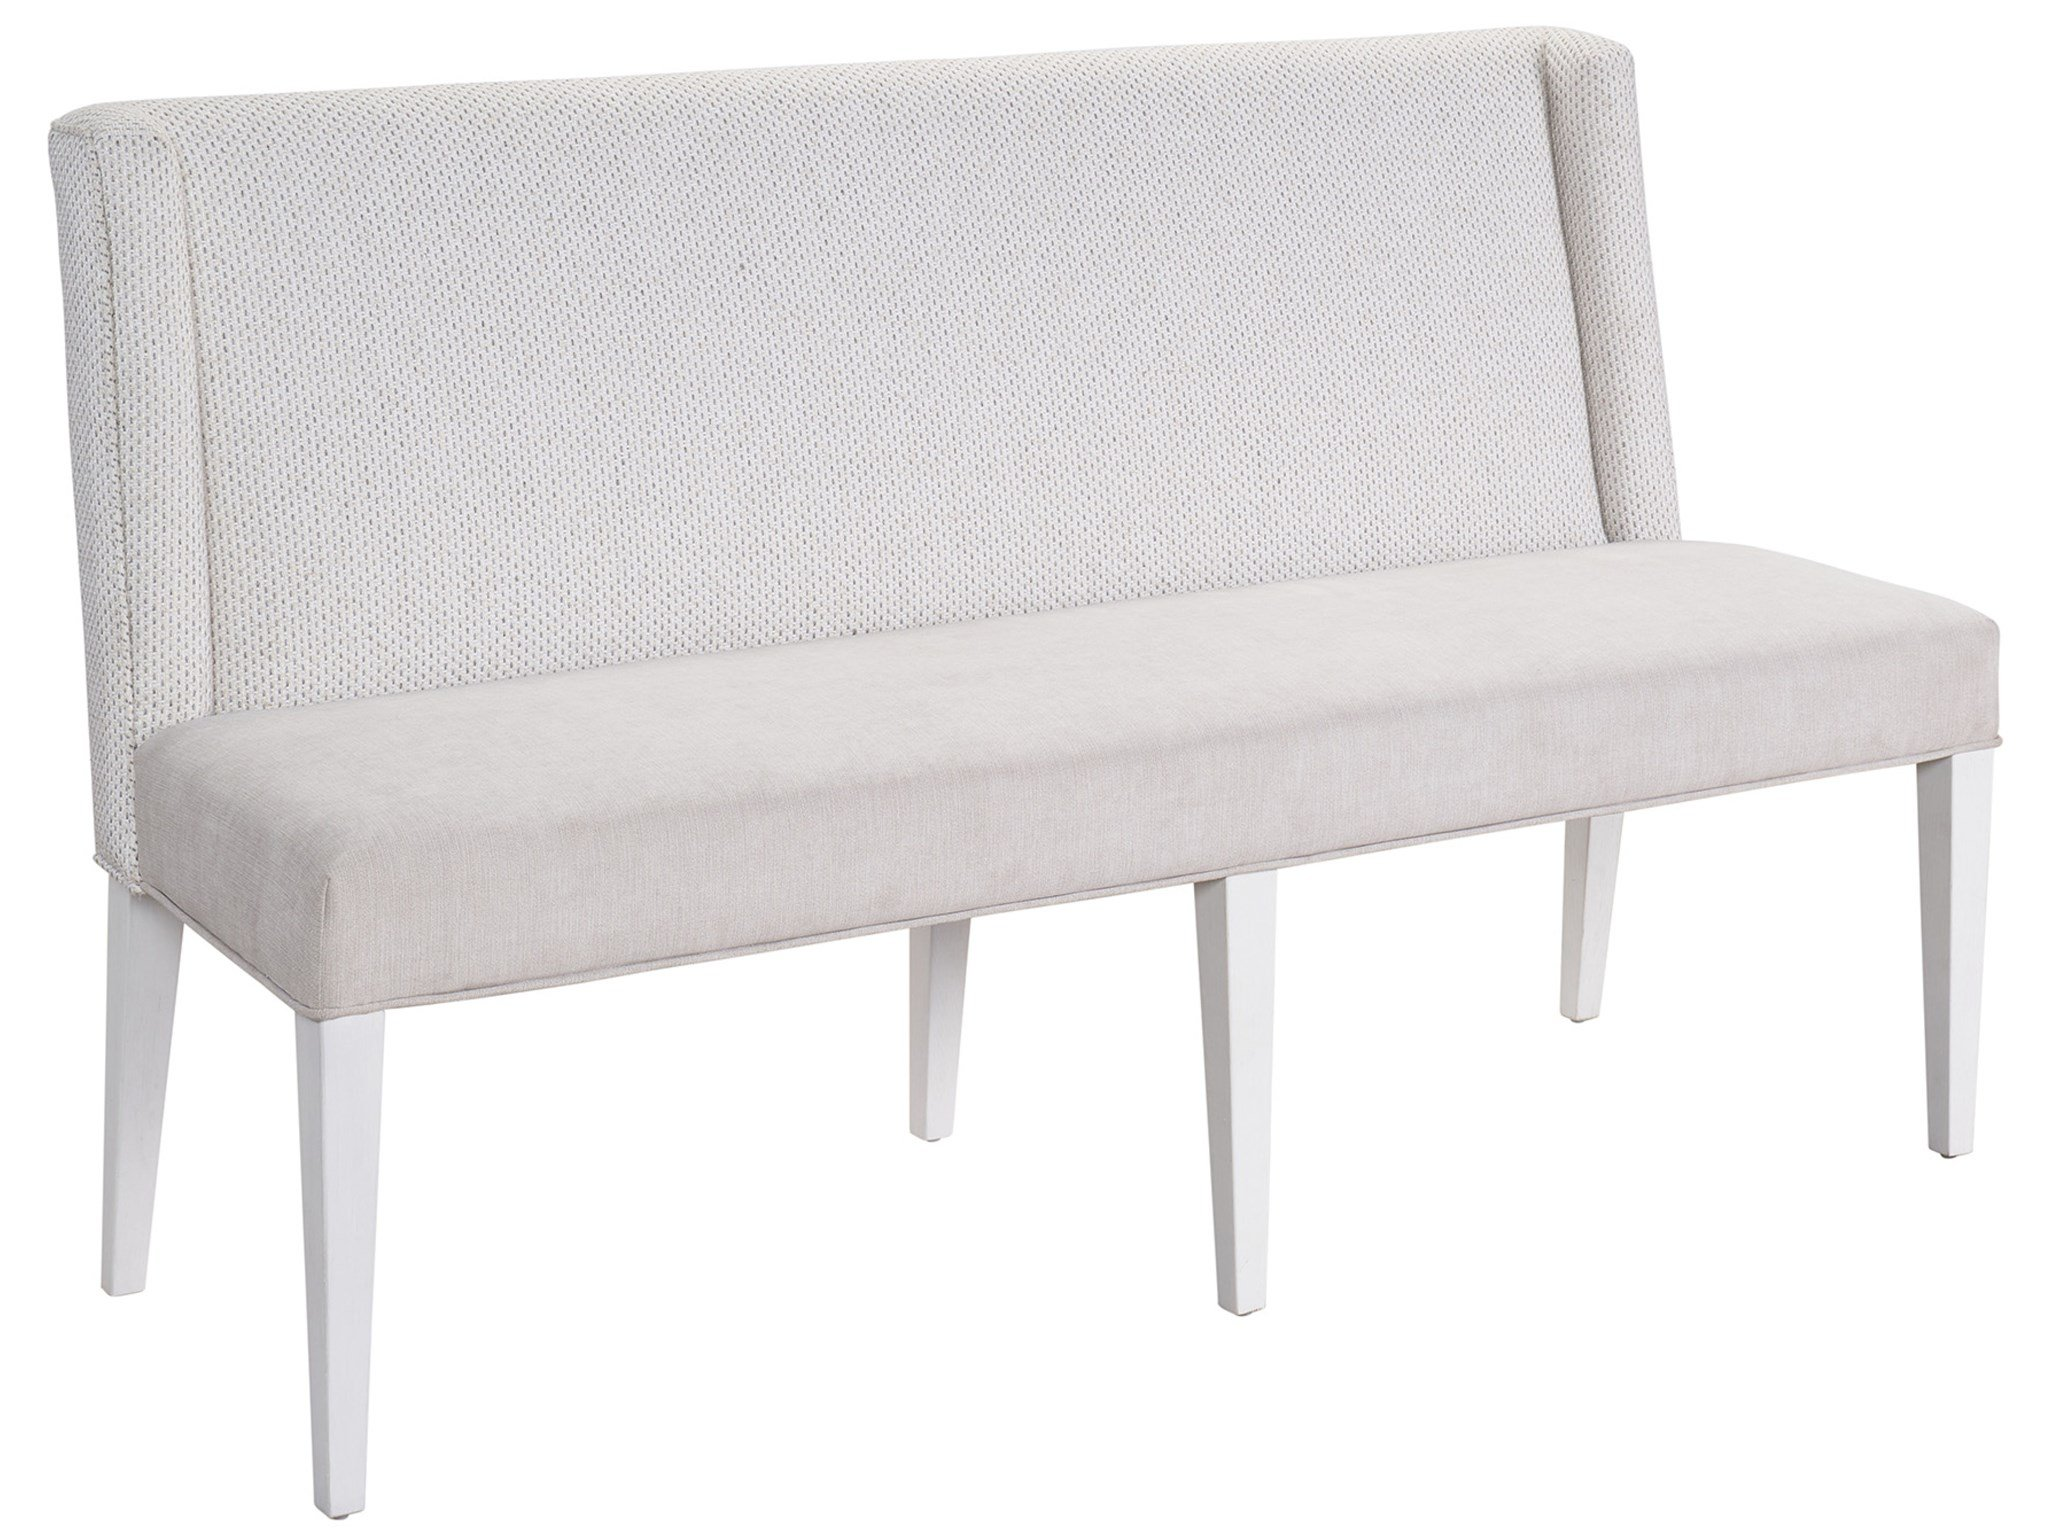 Peyton Banquette -Special Order